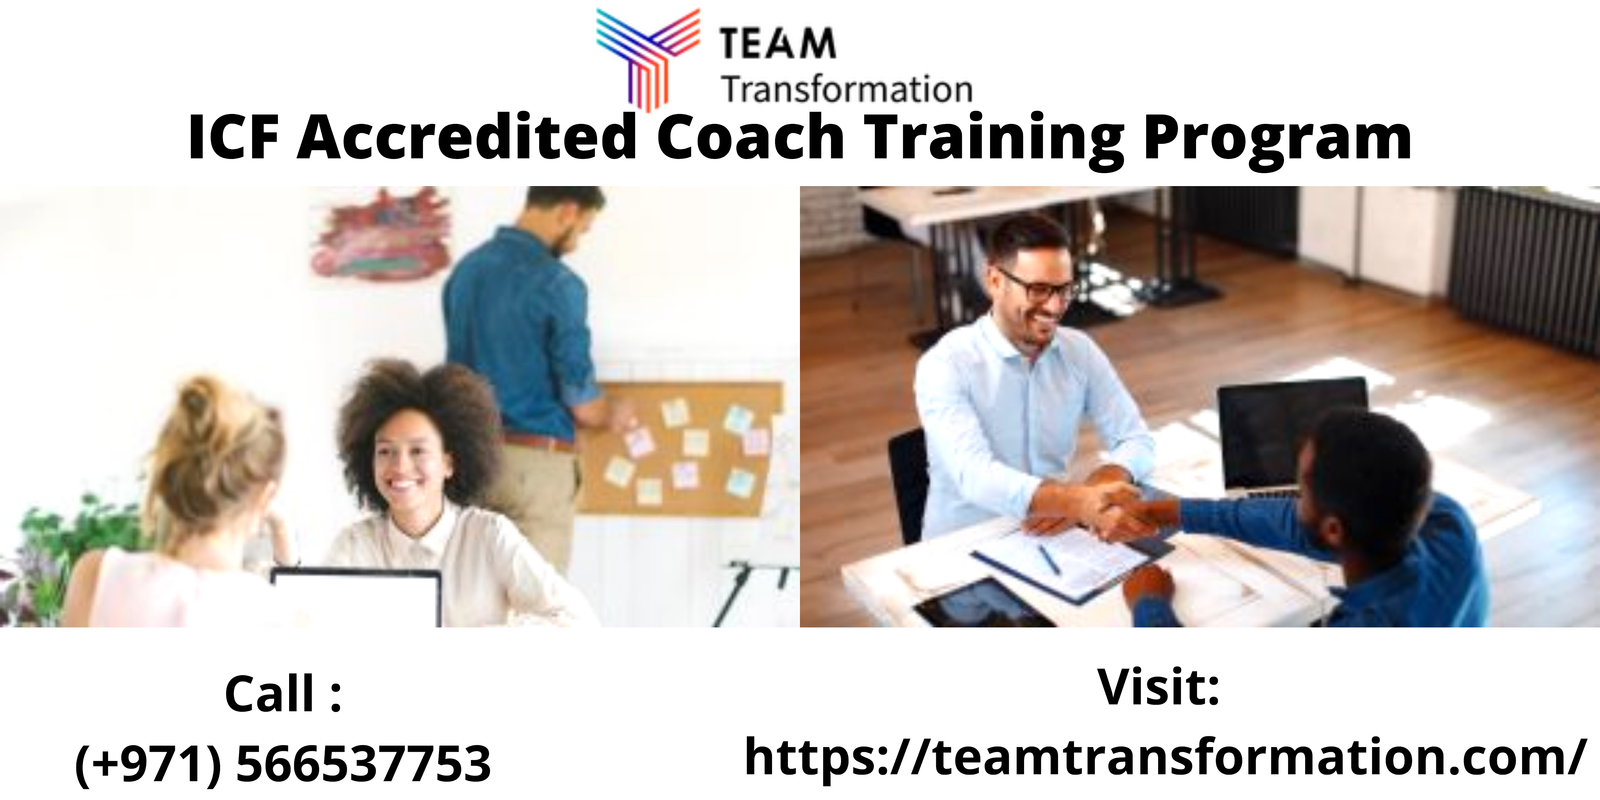 Certified Team Coach at Team Transformation